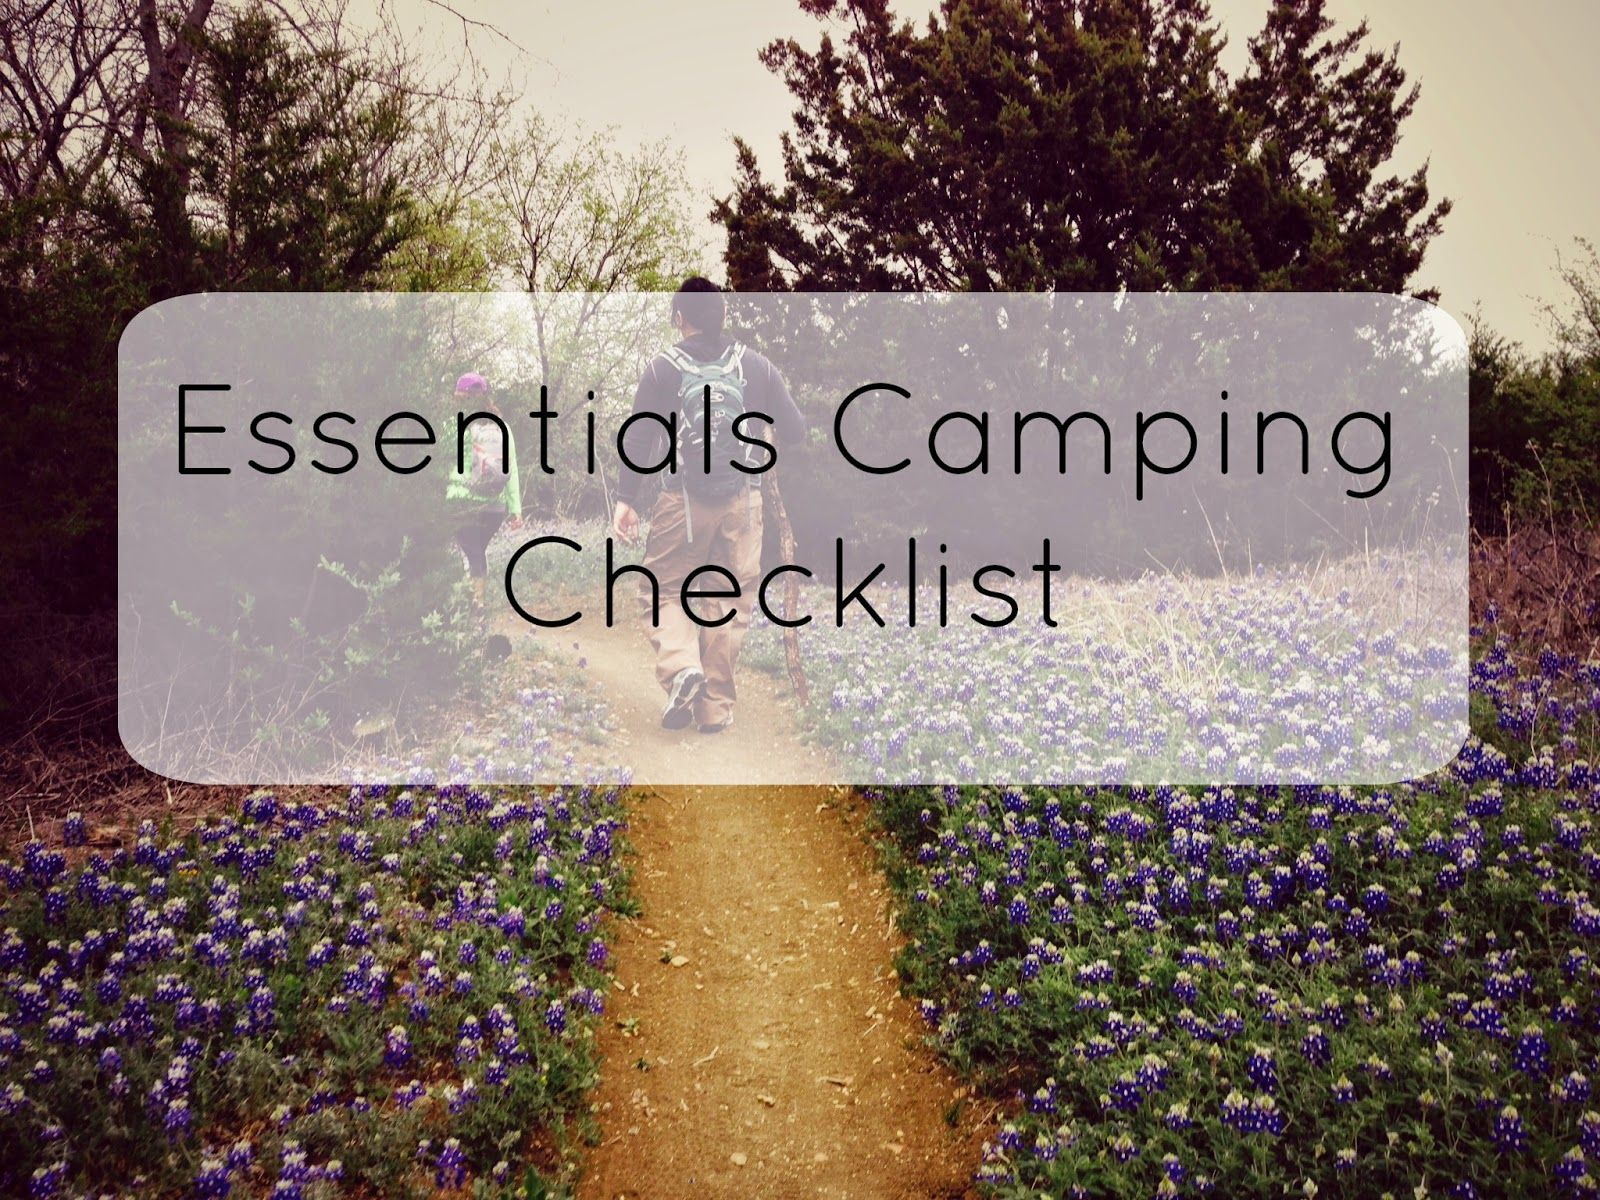 Essentials Camping Checklist! All in one document so you can have it on hand and check off items as you go.